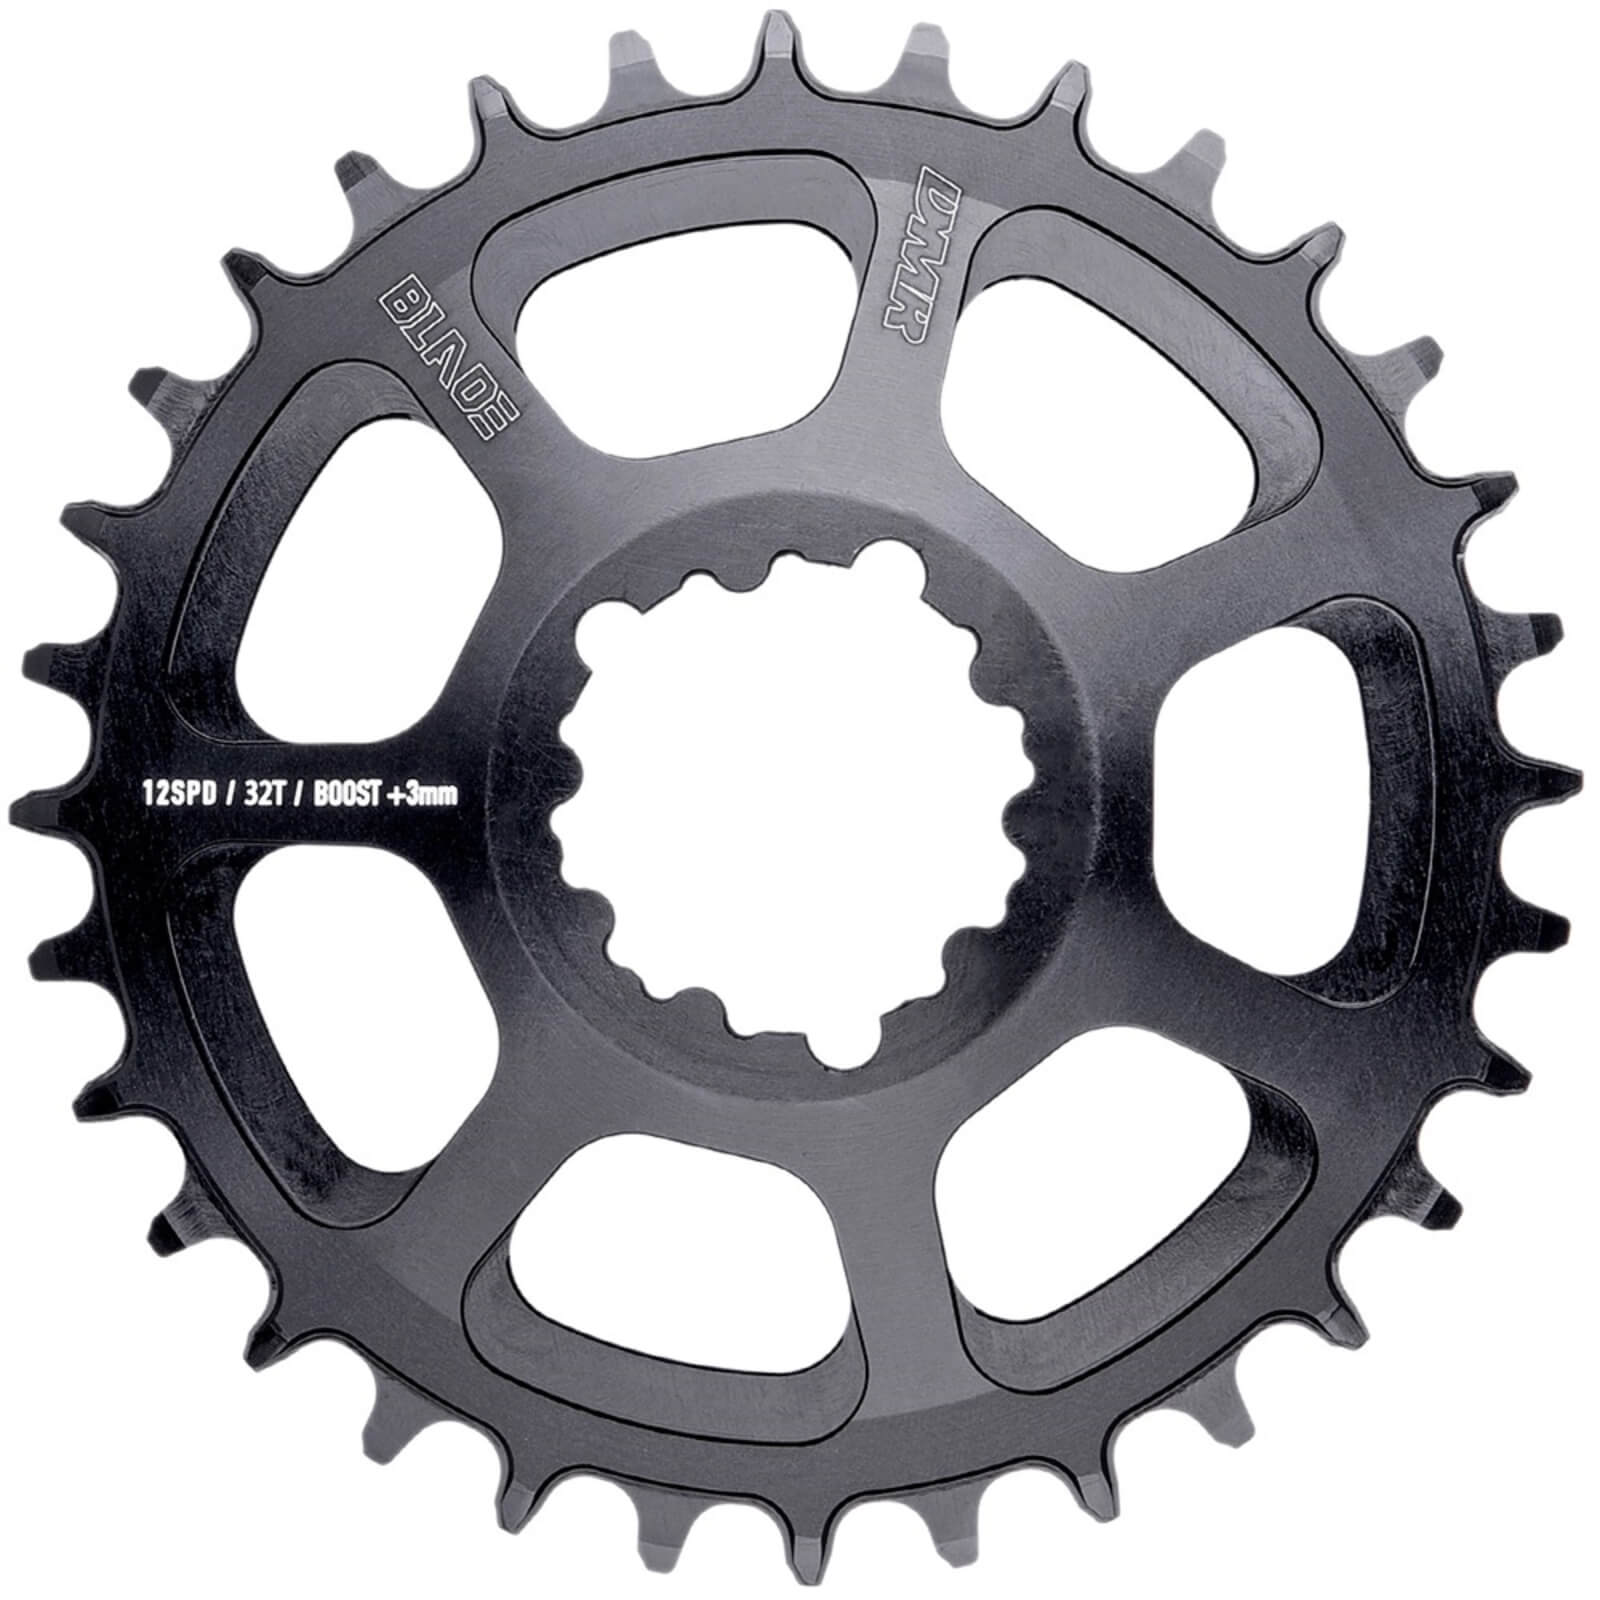 Dmr Blade 12 Speed Direct Mount Chain Ring - 30t - Boost